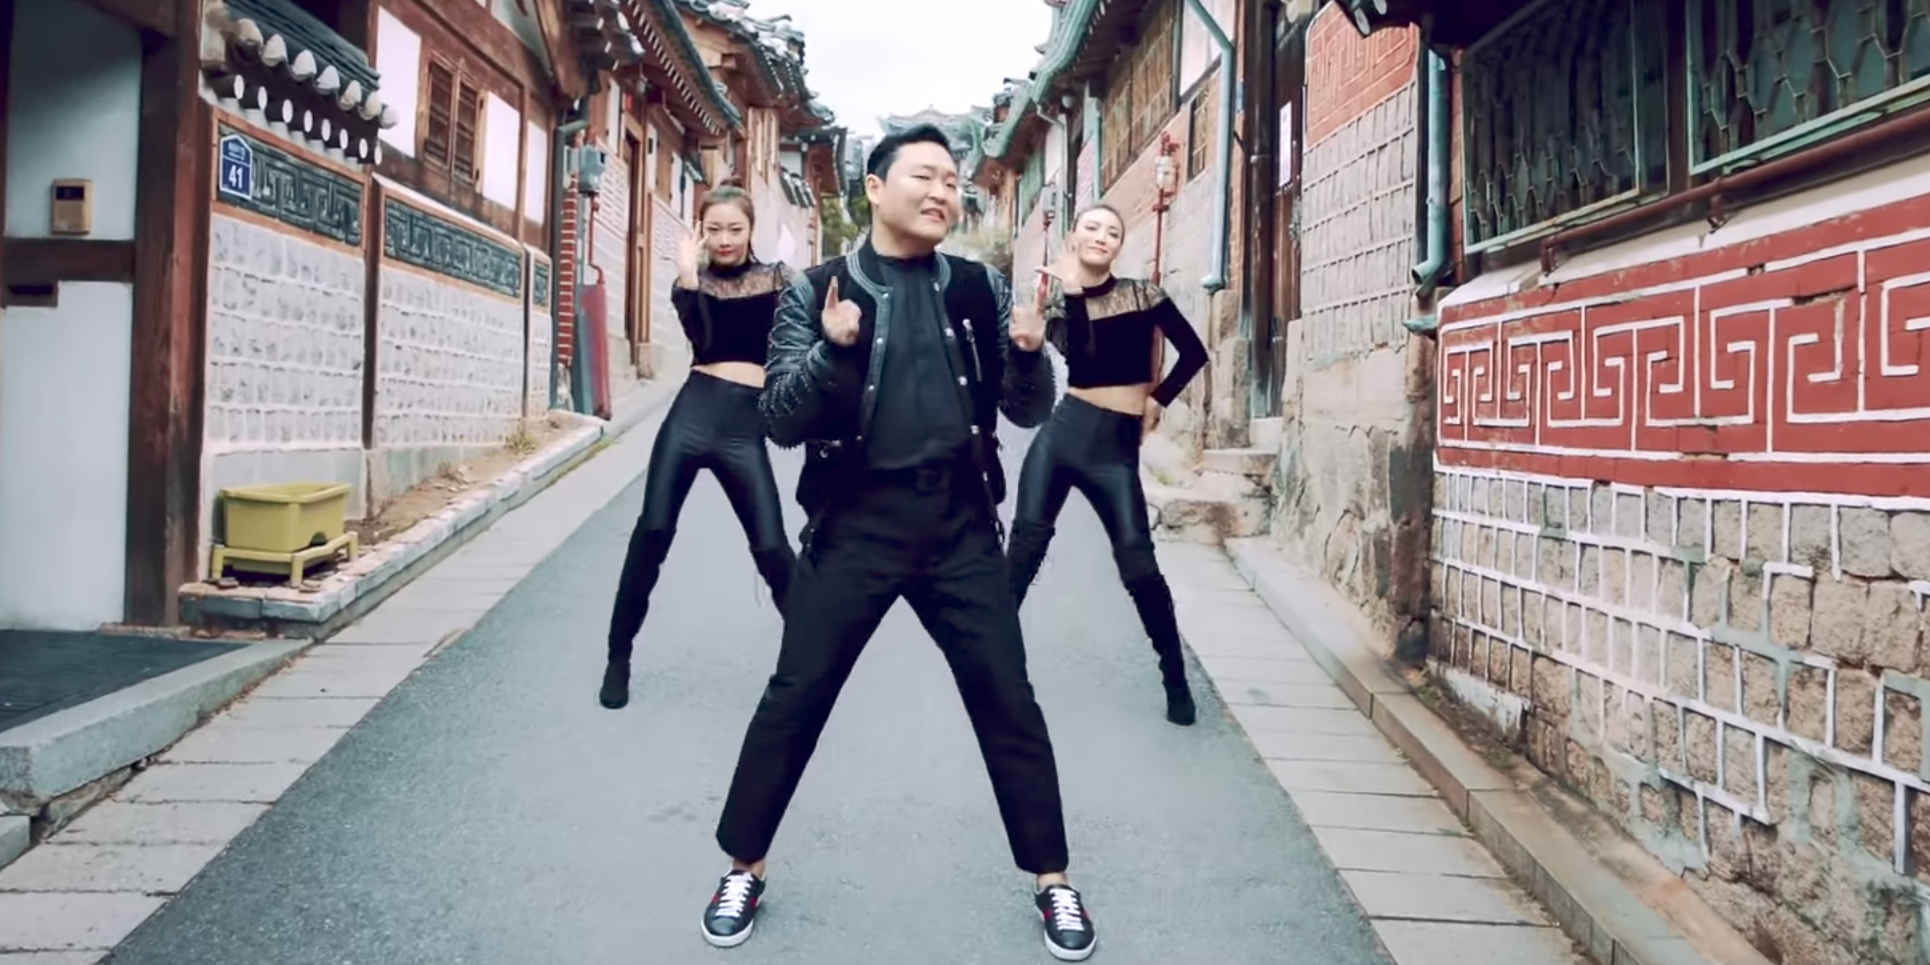 Step aside 'Gangnam Style', here come PSY's new hit singles